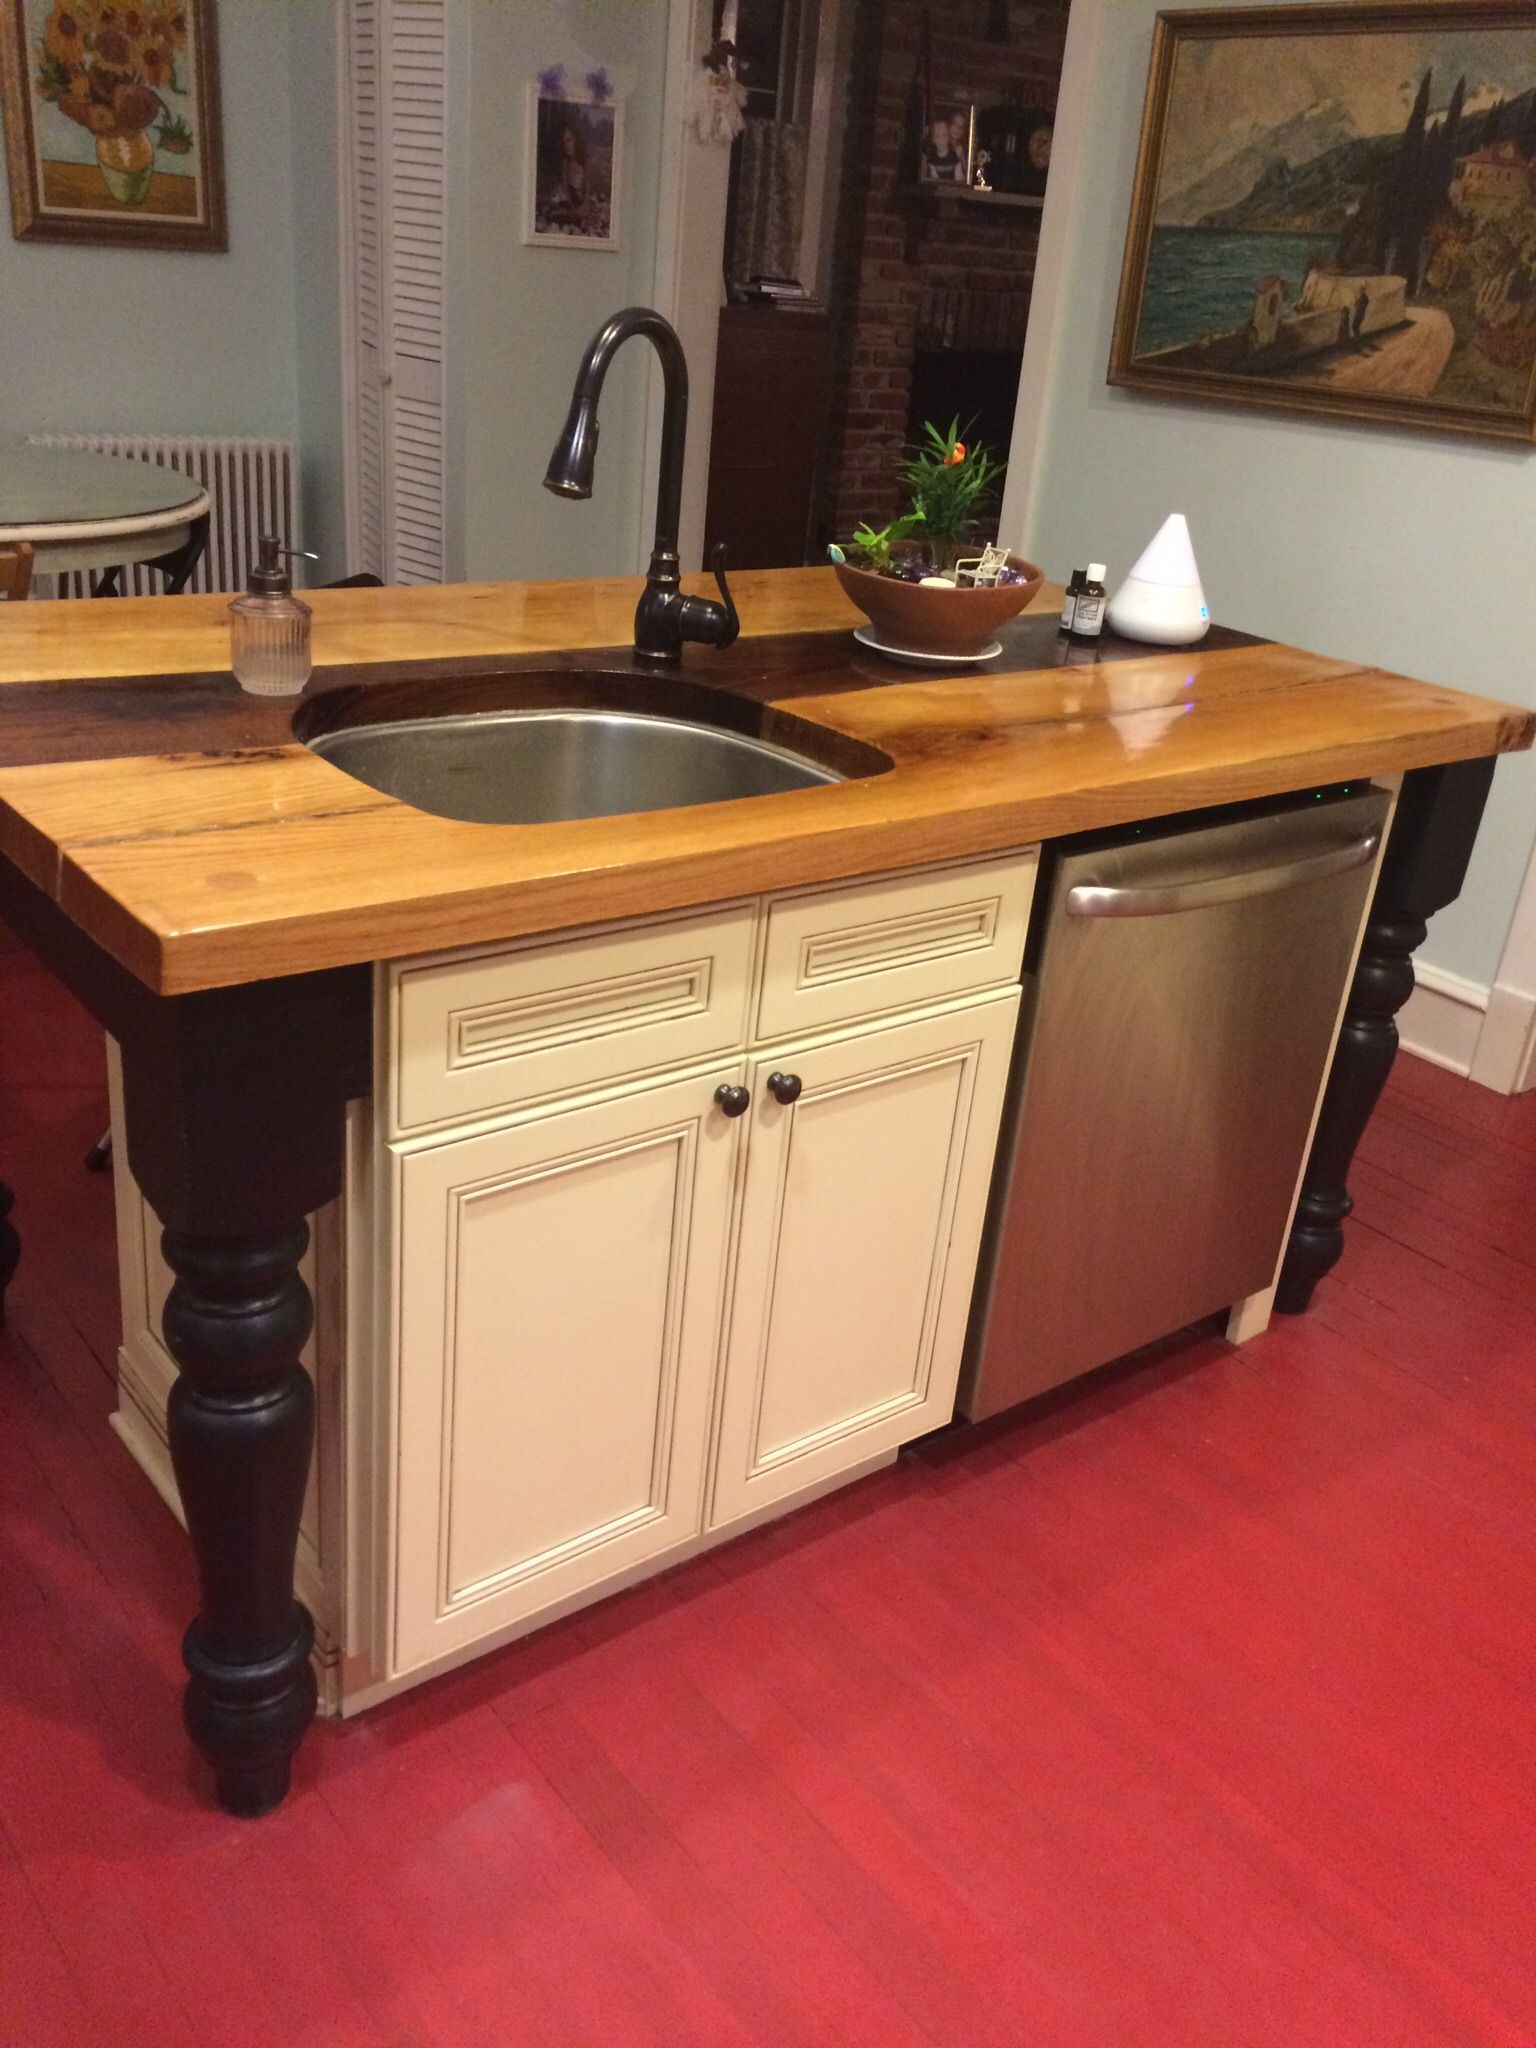 This custom wood top kitchen island with sink and